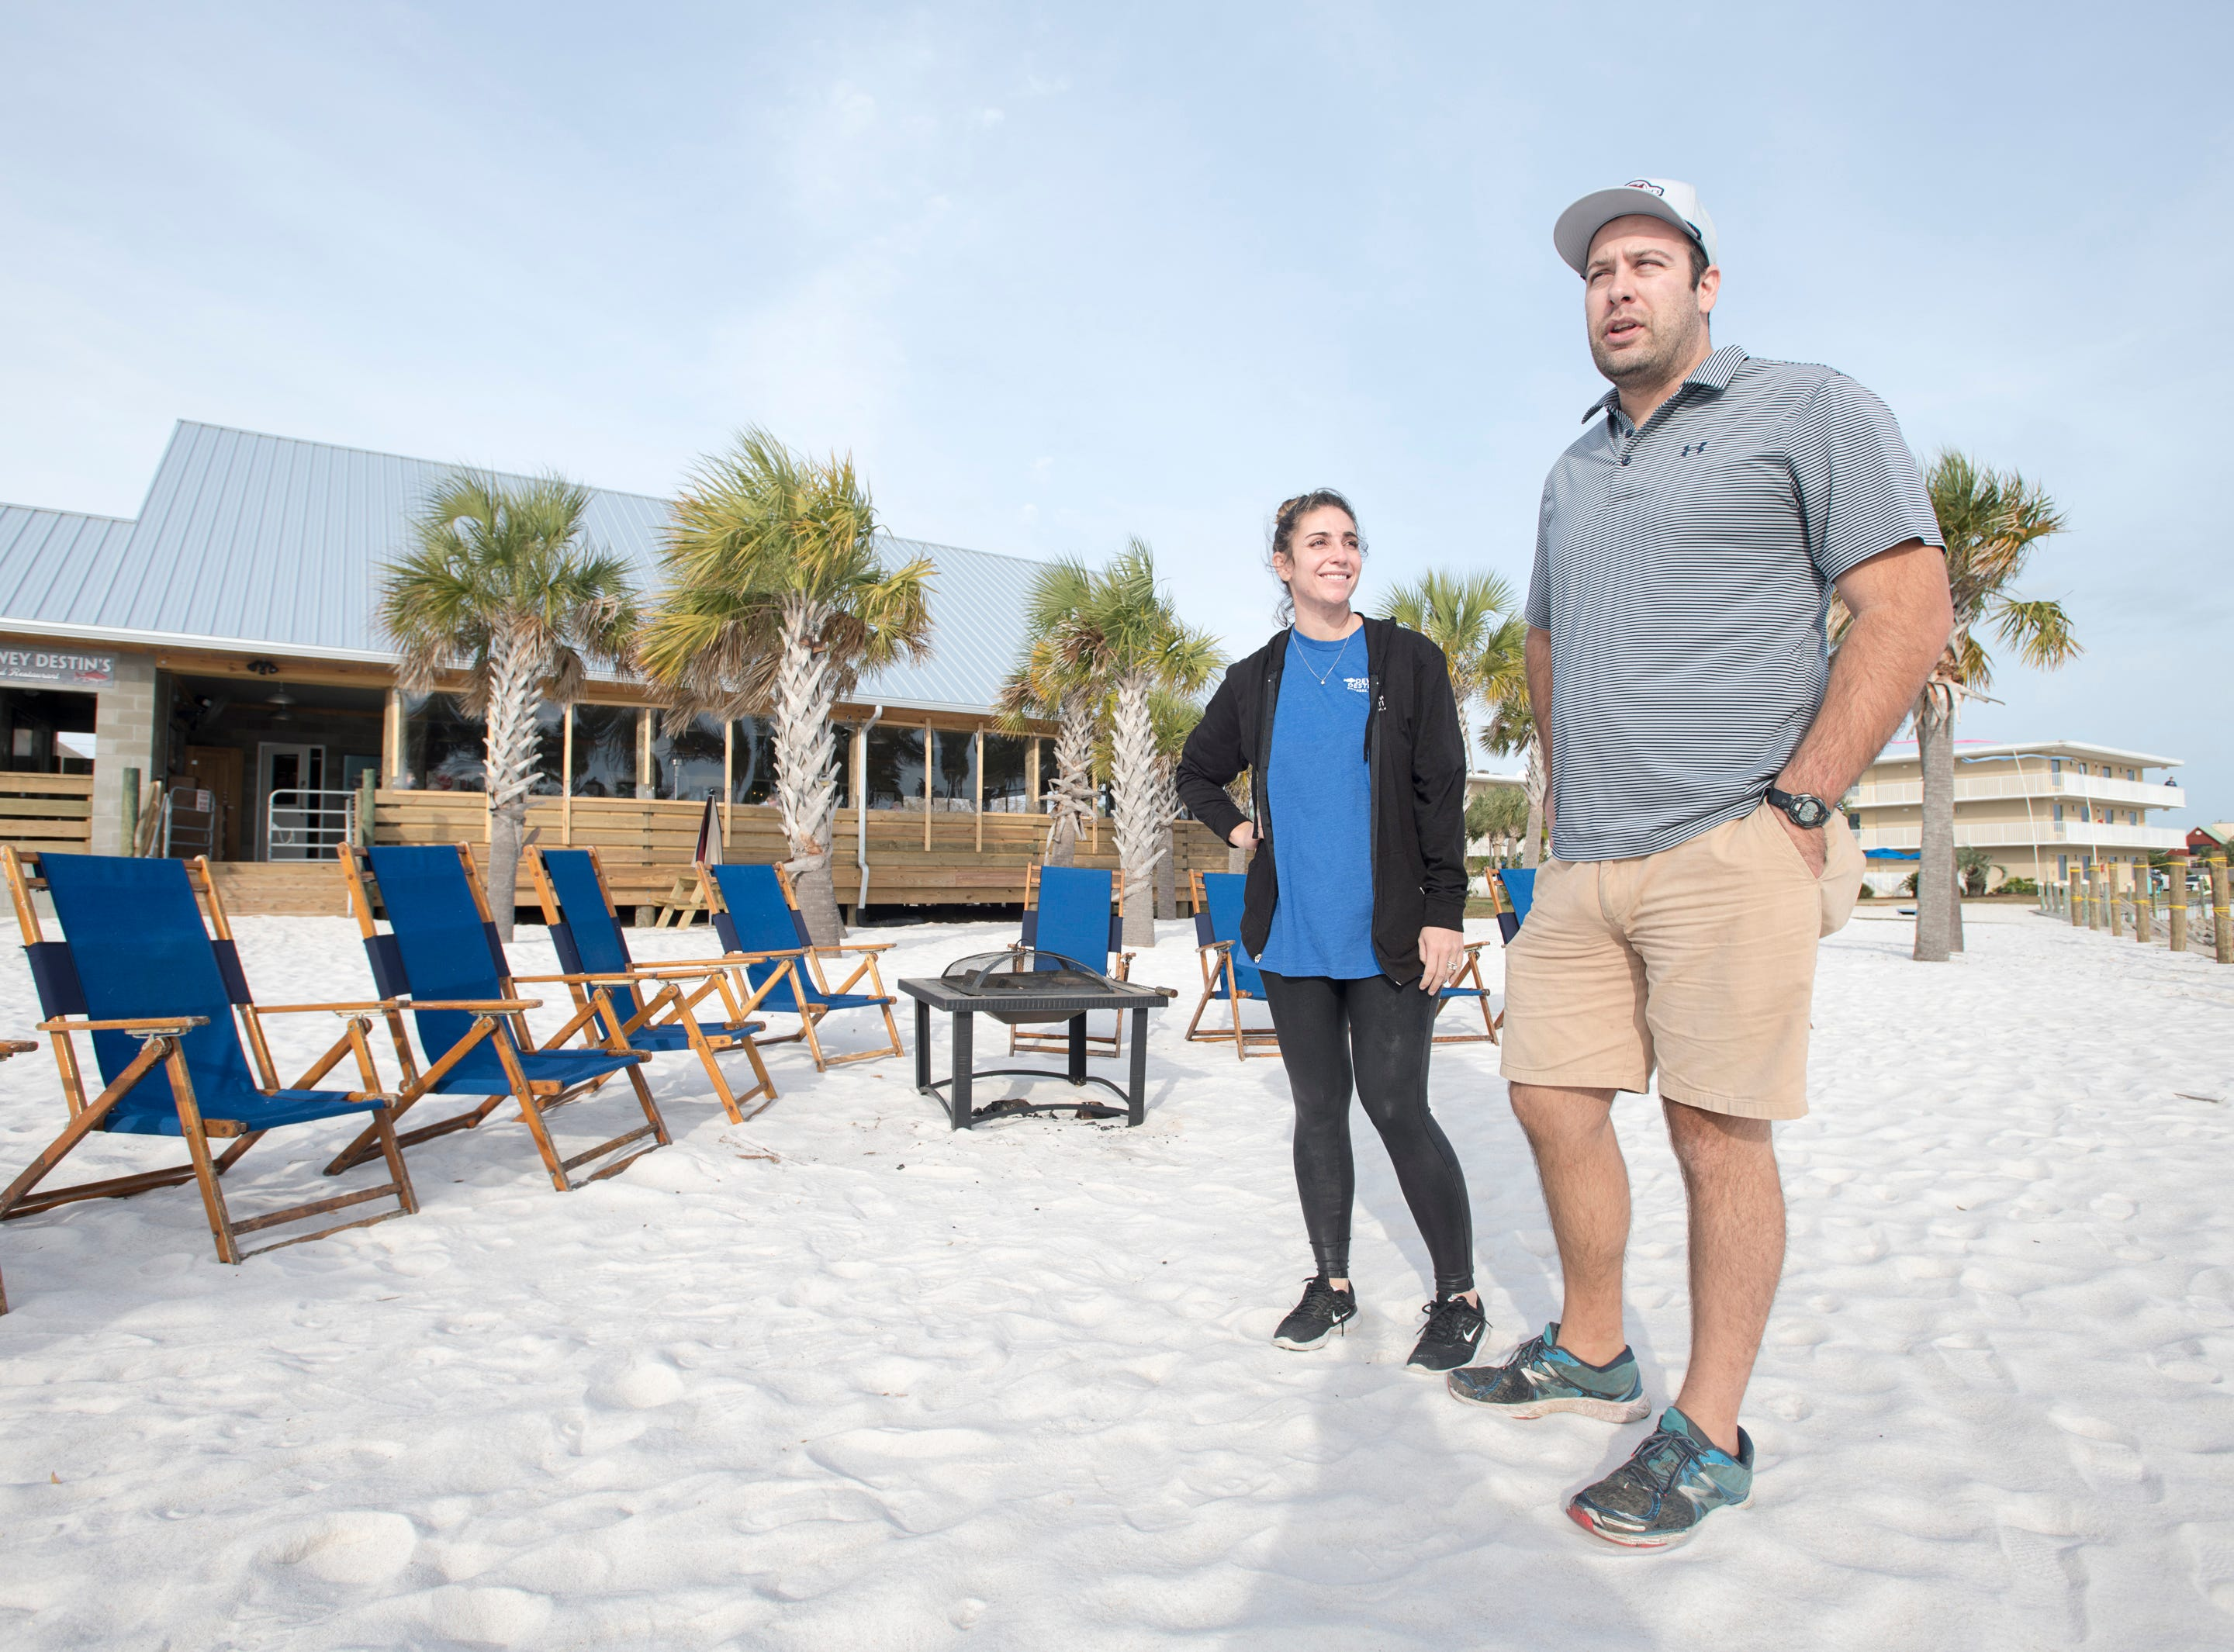 Co-owners Cameron Destin-Ayres, left, and Parker Destin talk about the backyard at their new Dewey Destin Seafood Restaurant in Navarre on Thursday, November 29, 2018.